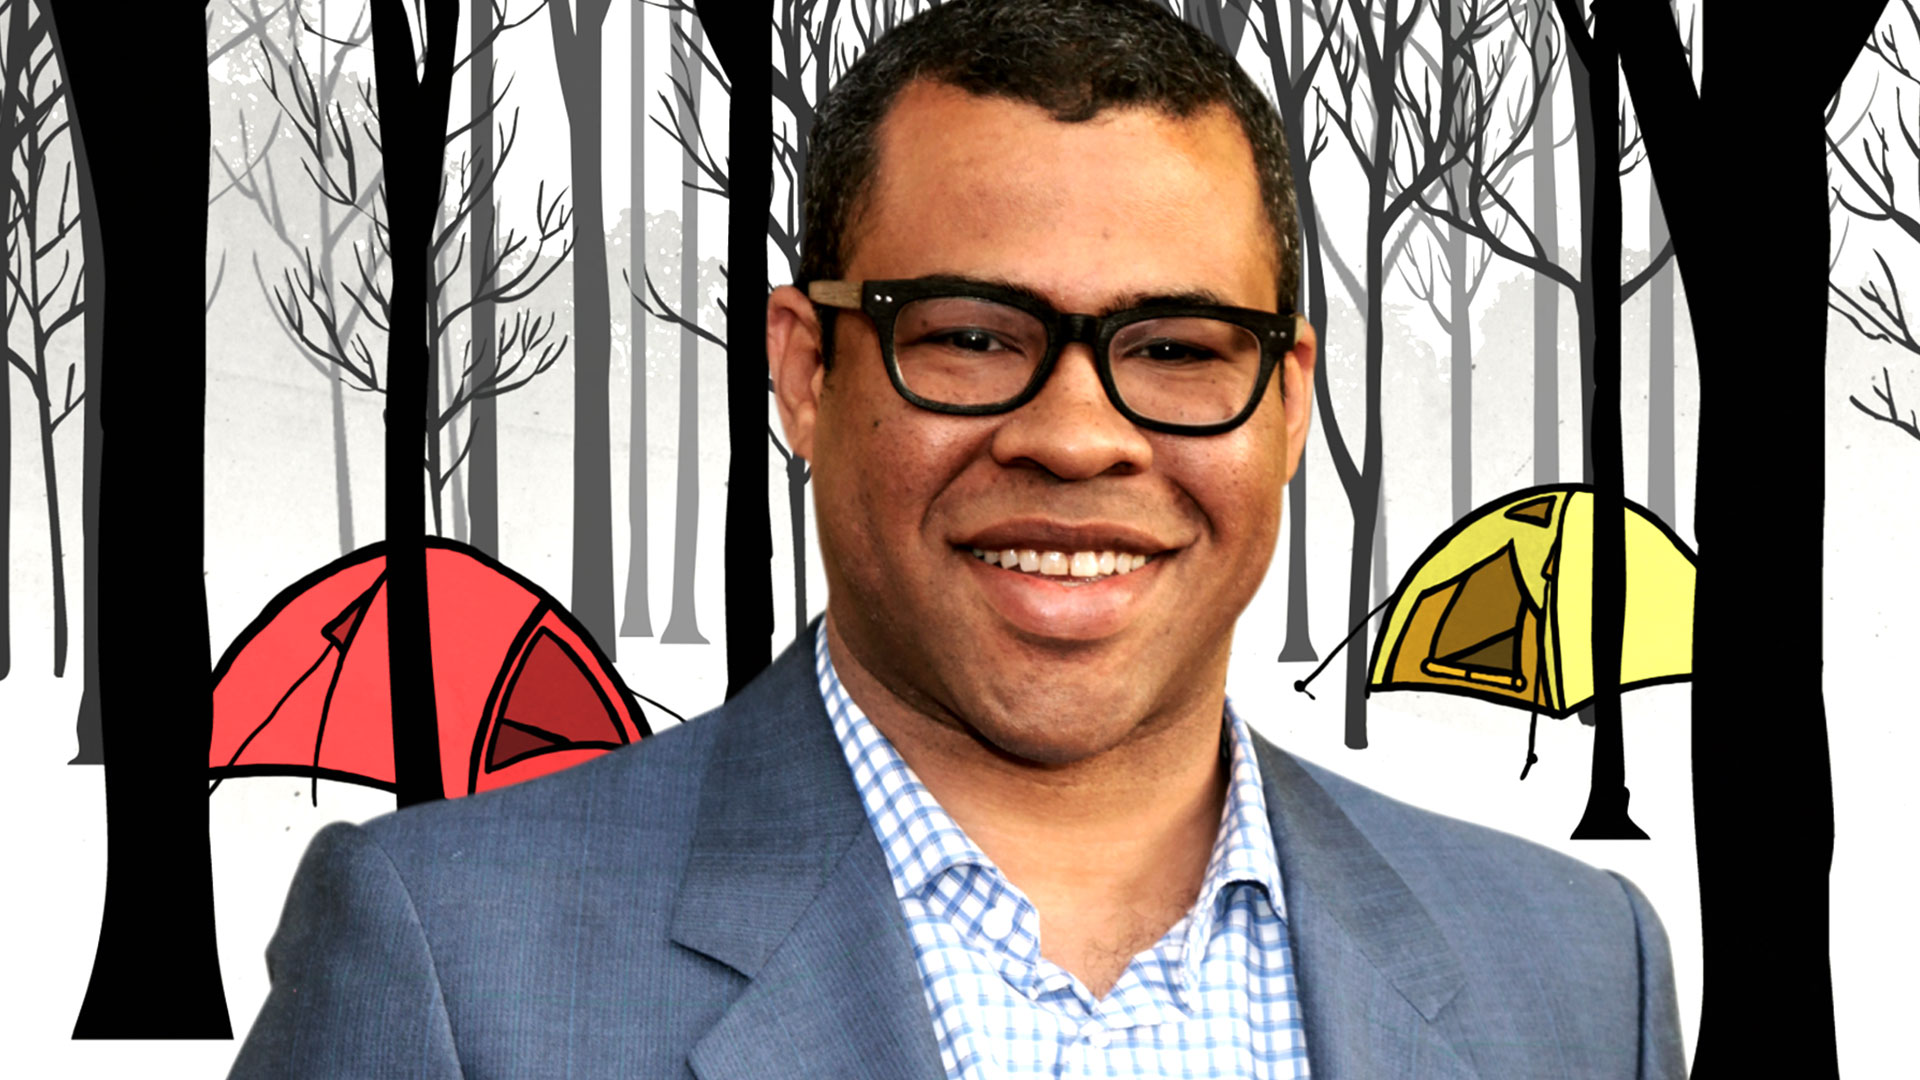 Biography Presents: Jordan Peele